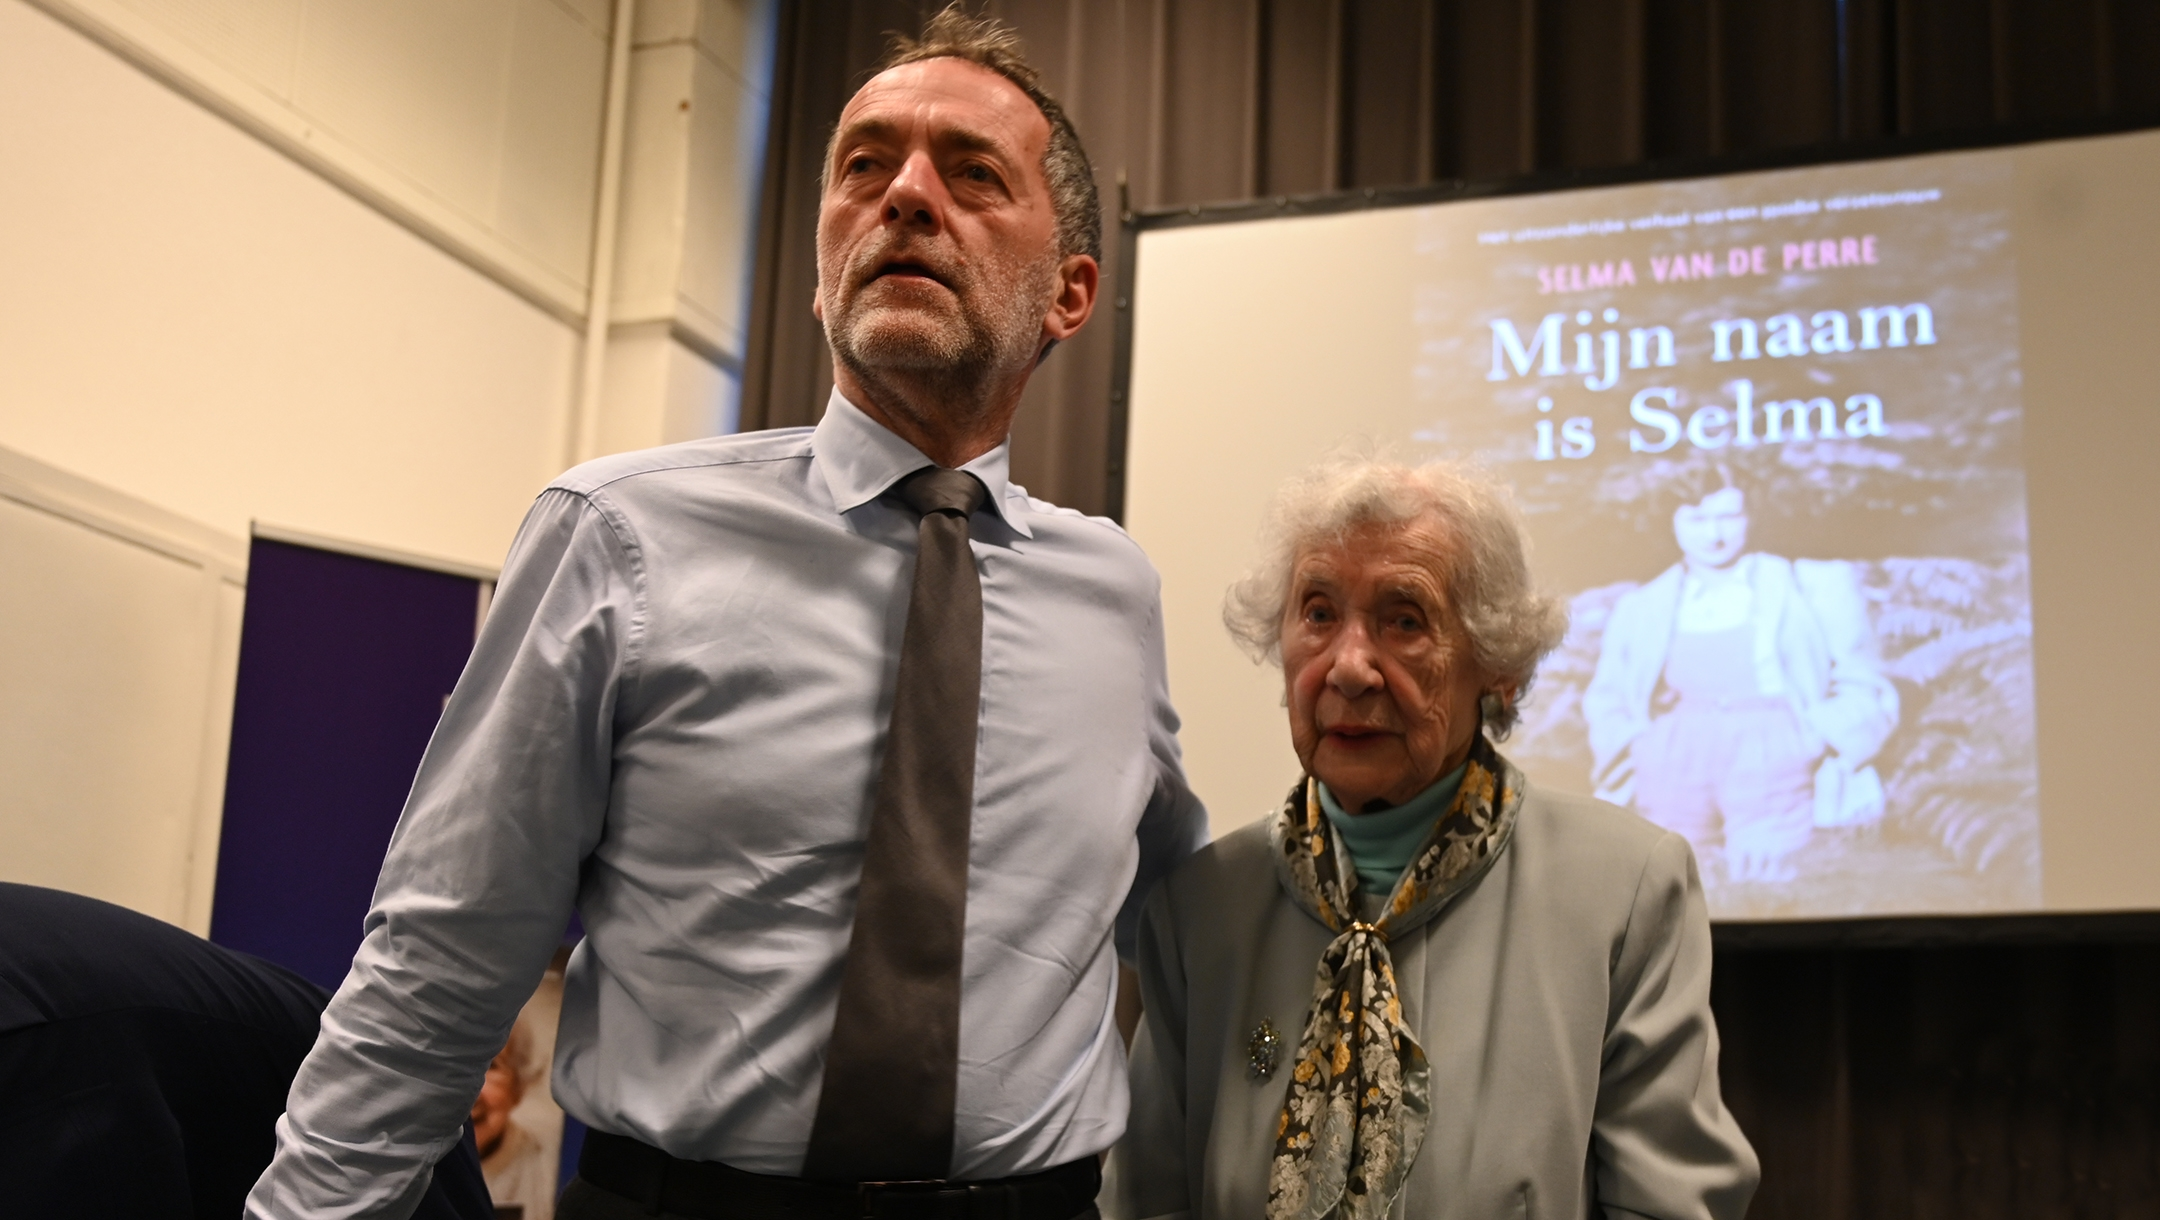 Selma van de Perre and her son, Jocelin, during a presentation of her book at the National Holocaust Museum in Amsterdam, the Netherlands on Jan. 9, 2020. (Cnaan Liphshiz)